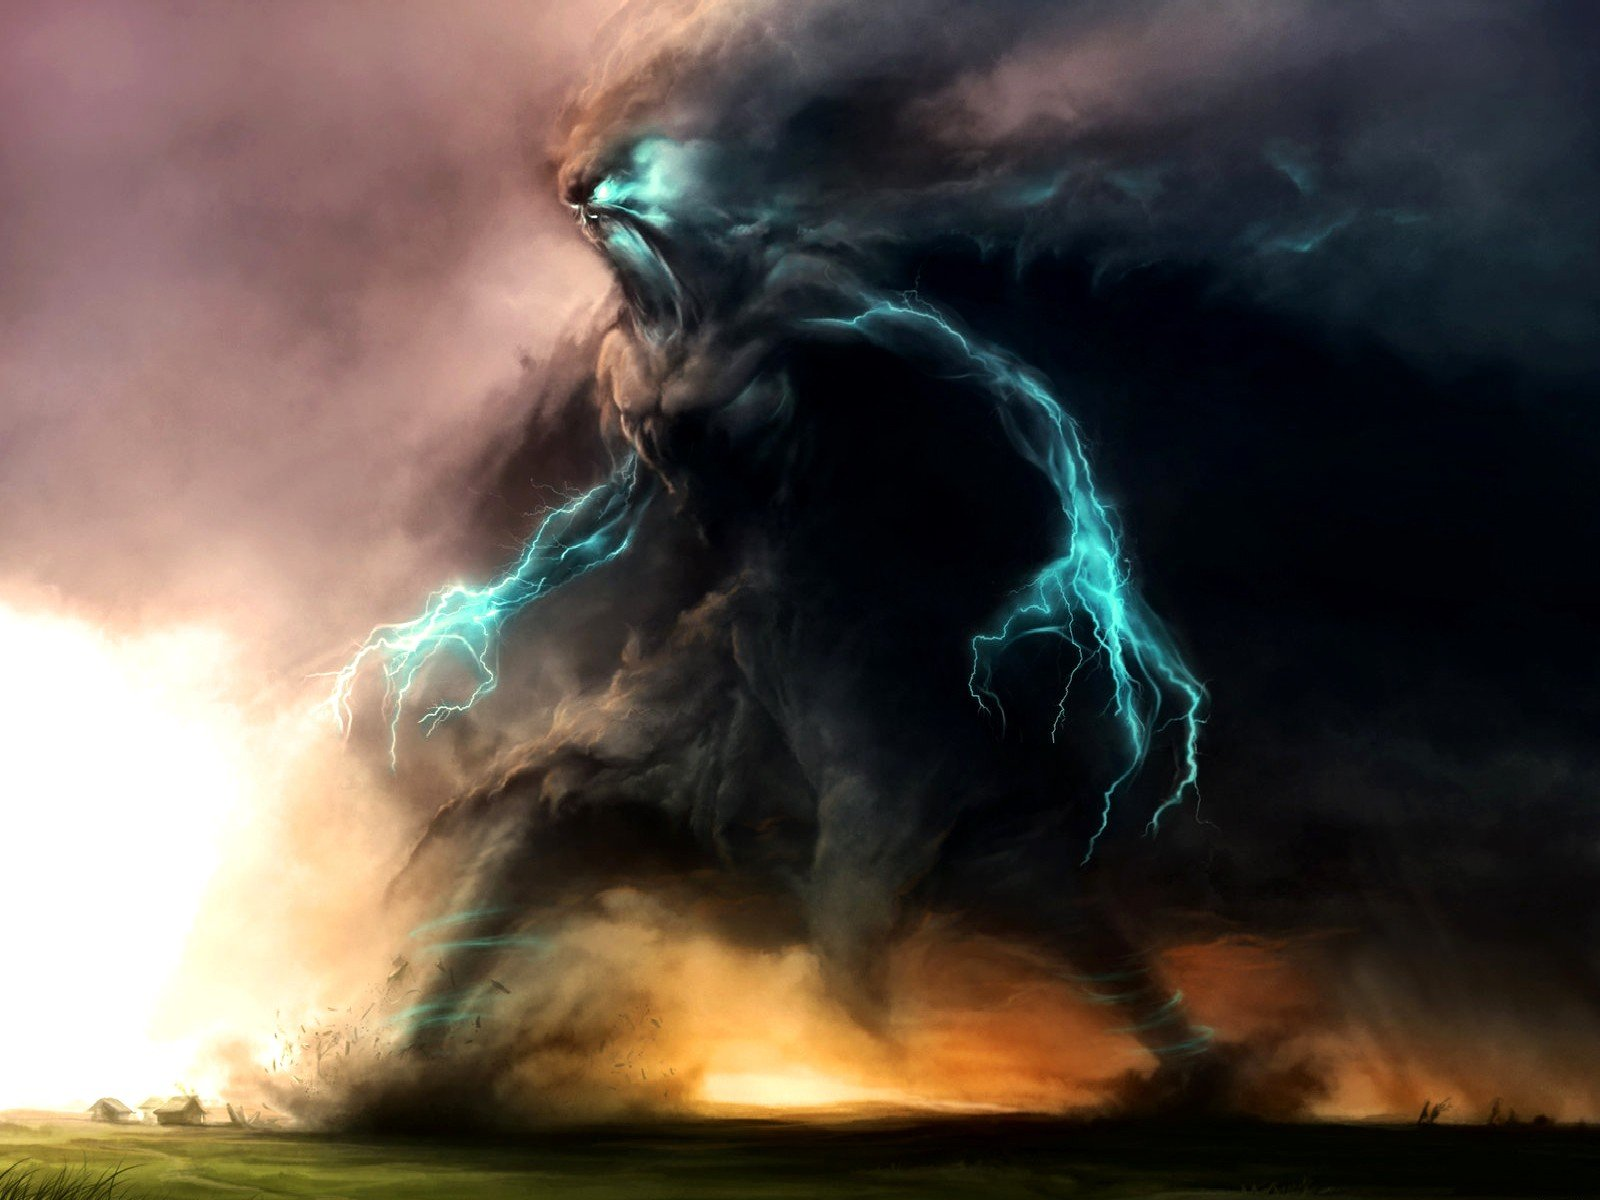 Android HTC Sensation  Tornado Wallpapers HD, Desktop 1600x1200